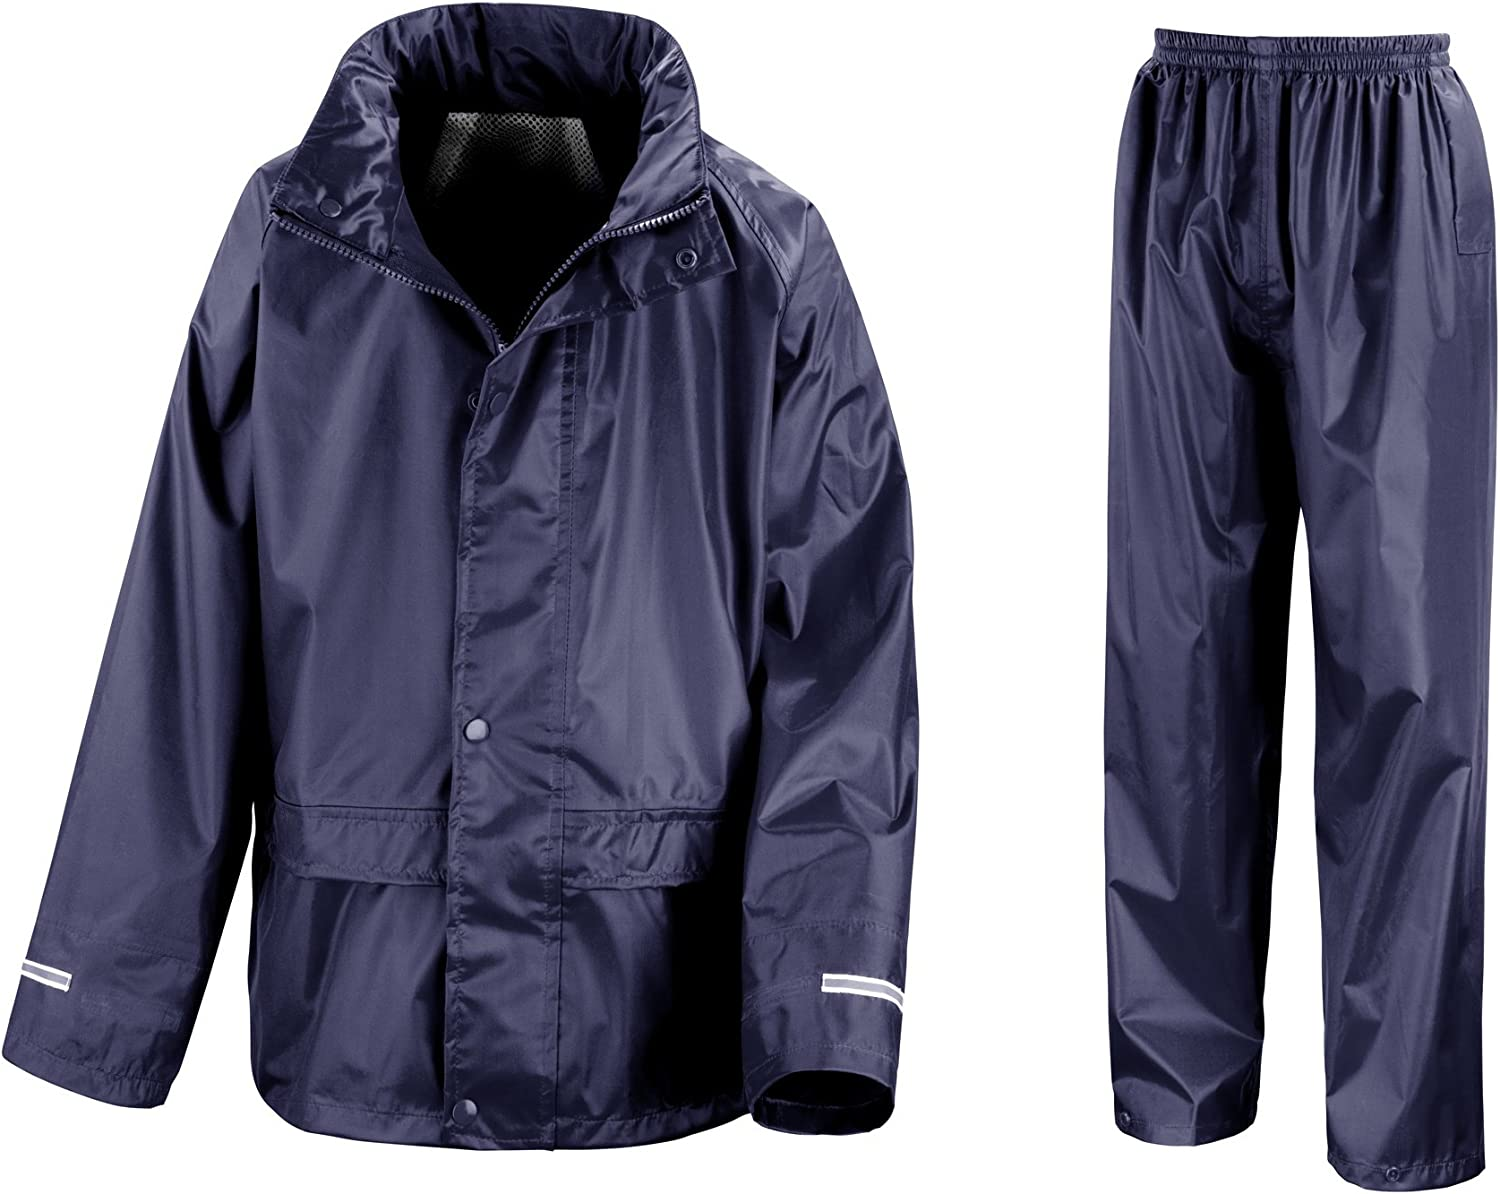 Kids Childrens Waterproof Jacket and Trouser Set